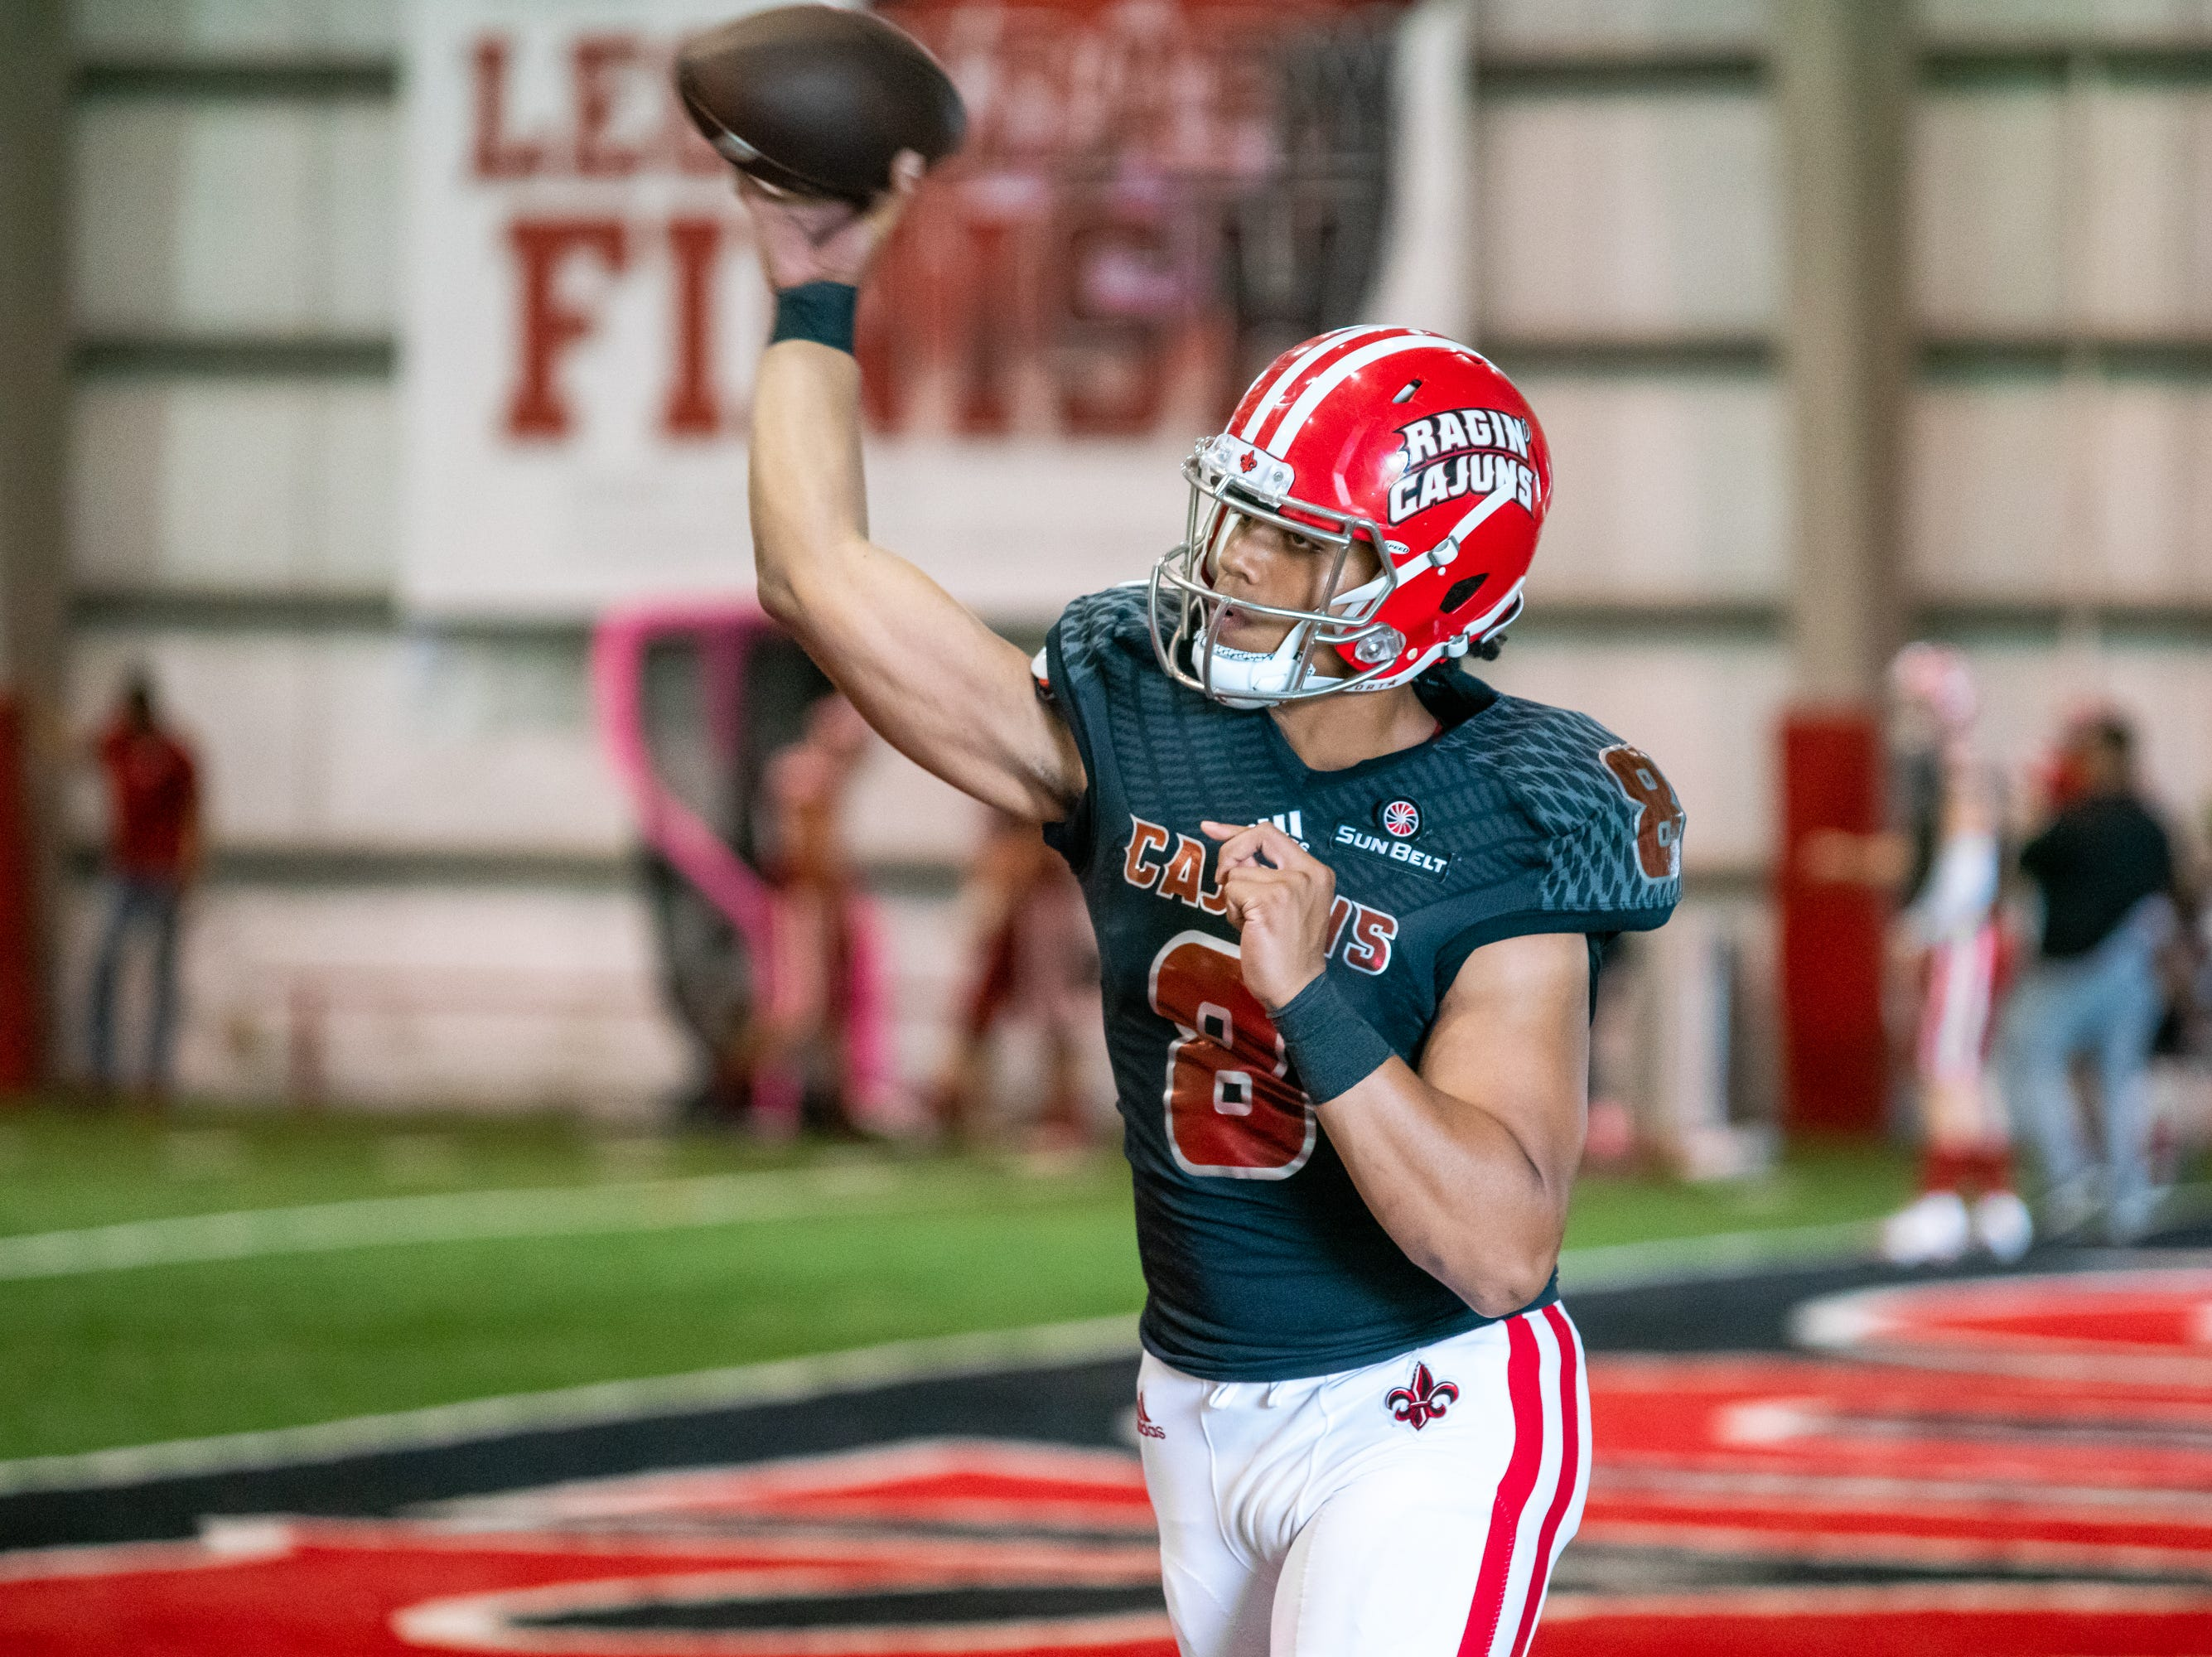 UL's quarterback Jai'ave Magalei practices his throw during halftime as the Ragin' Cajuns football team plays their annual Spring football game against one another in the Leon Moncla trainig facility on April 13, 2019.